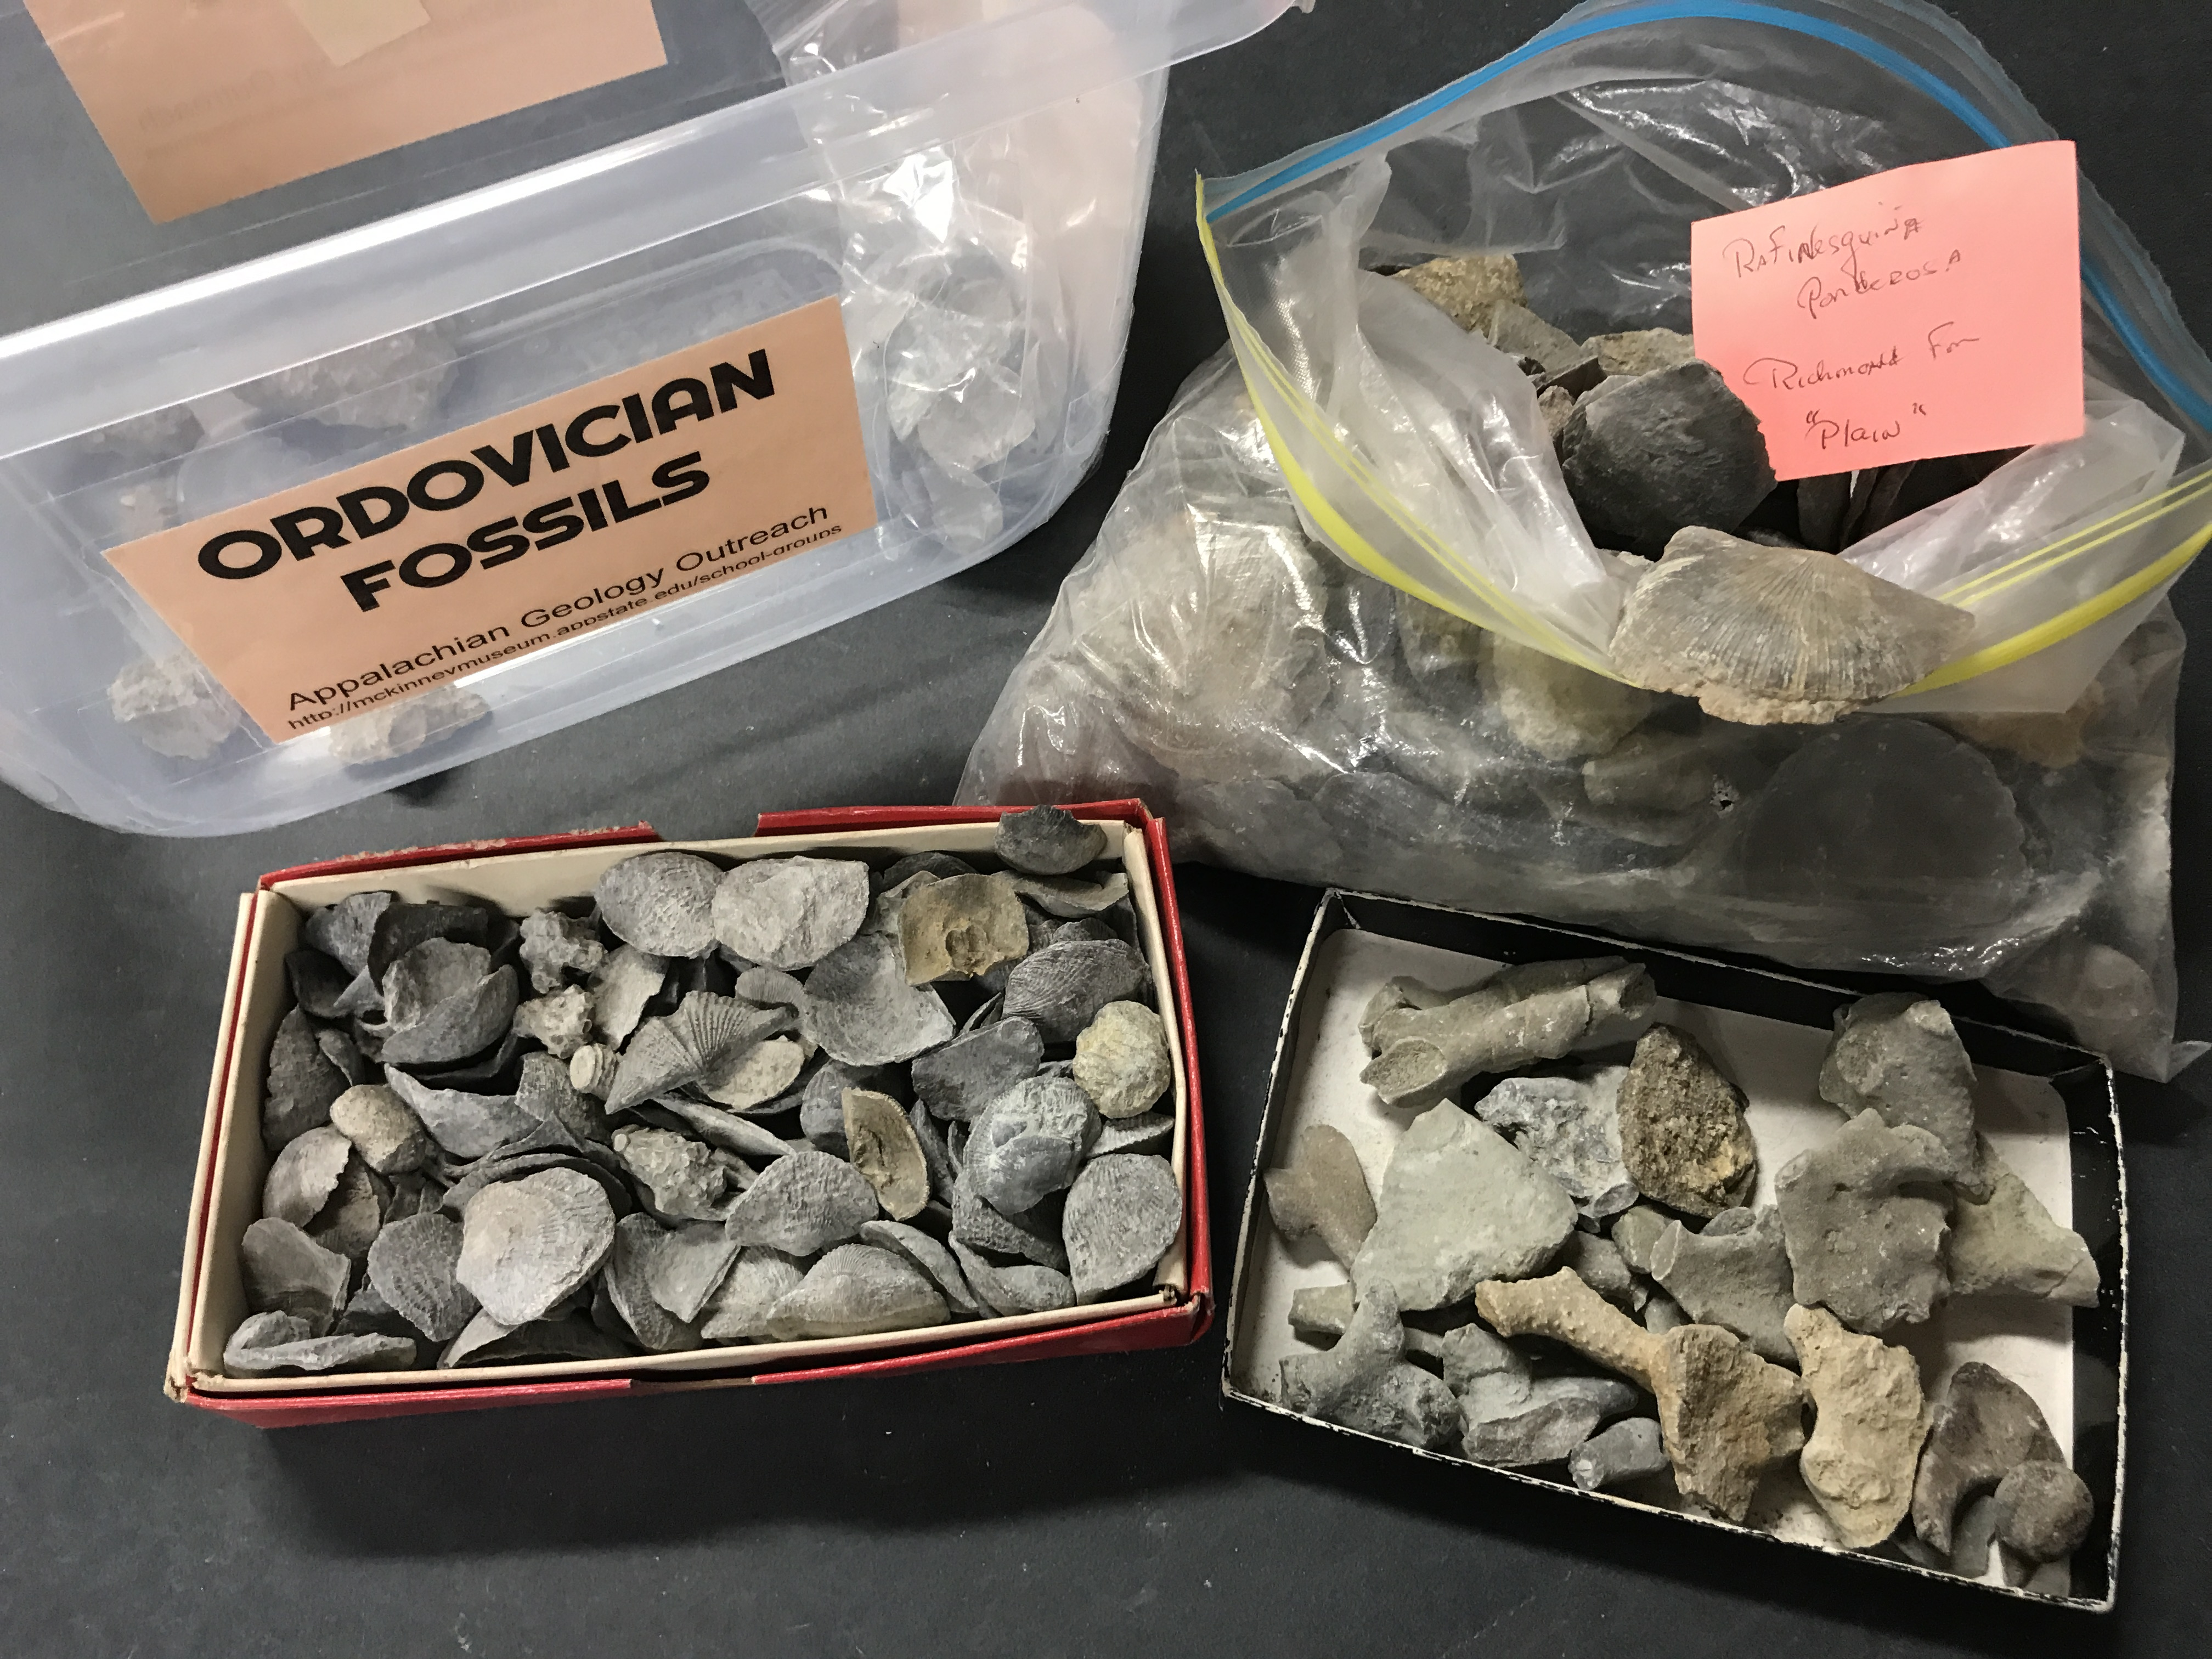 Ordovician Fossil Samples